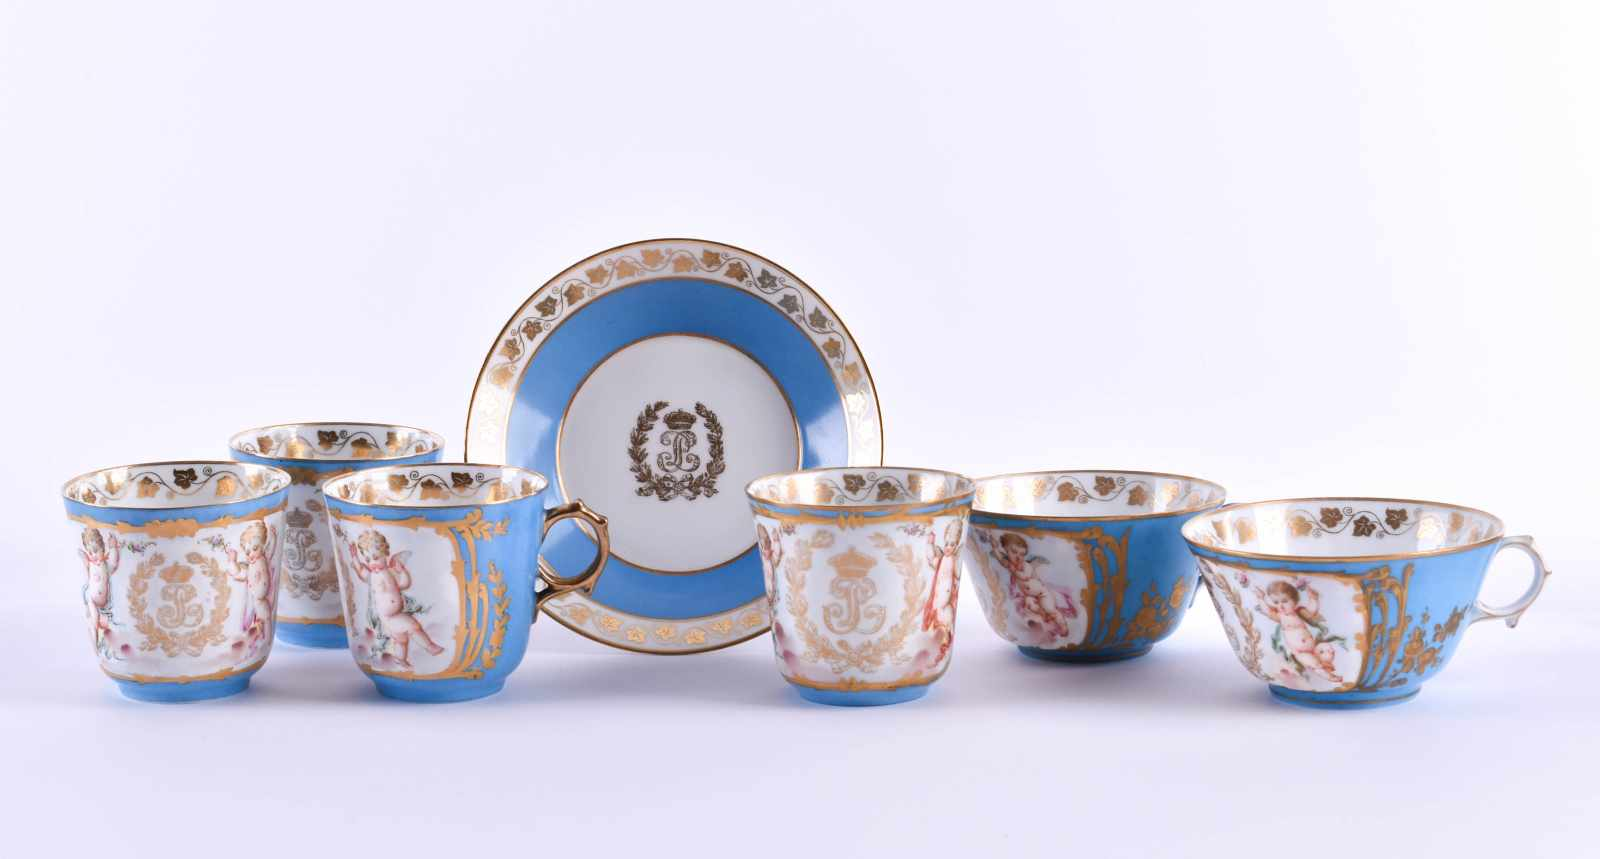 A group of Sevres KING LOUIS PHILIPPE DE FRANCE 1846